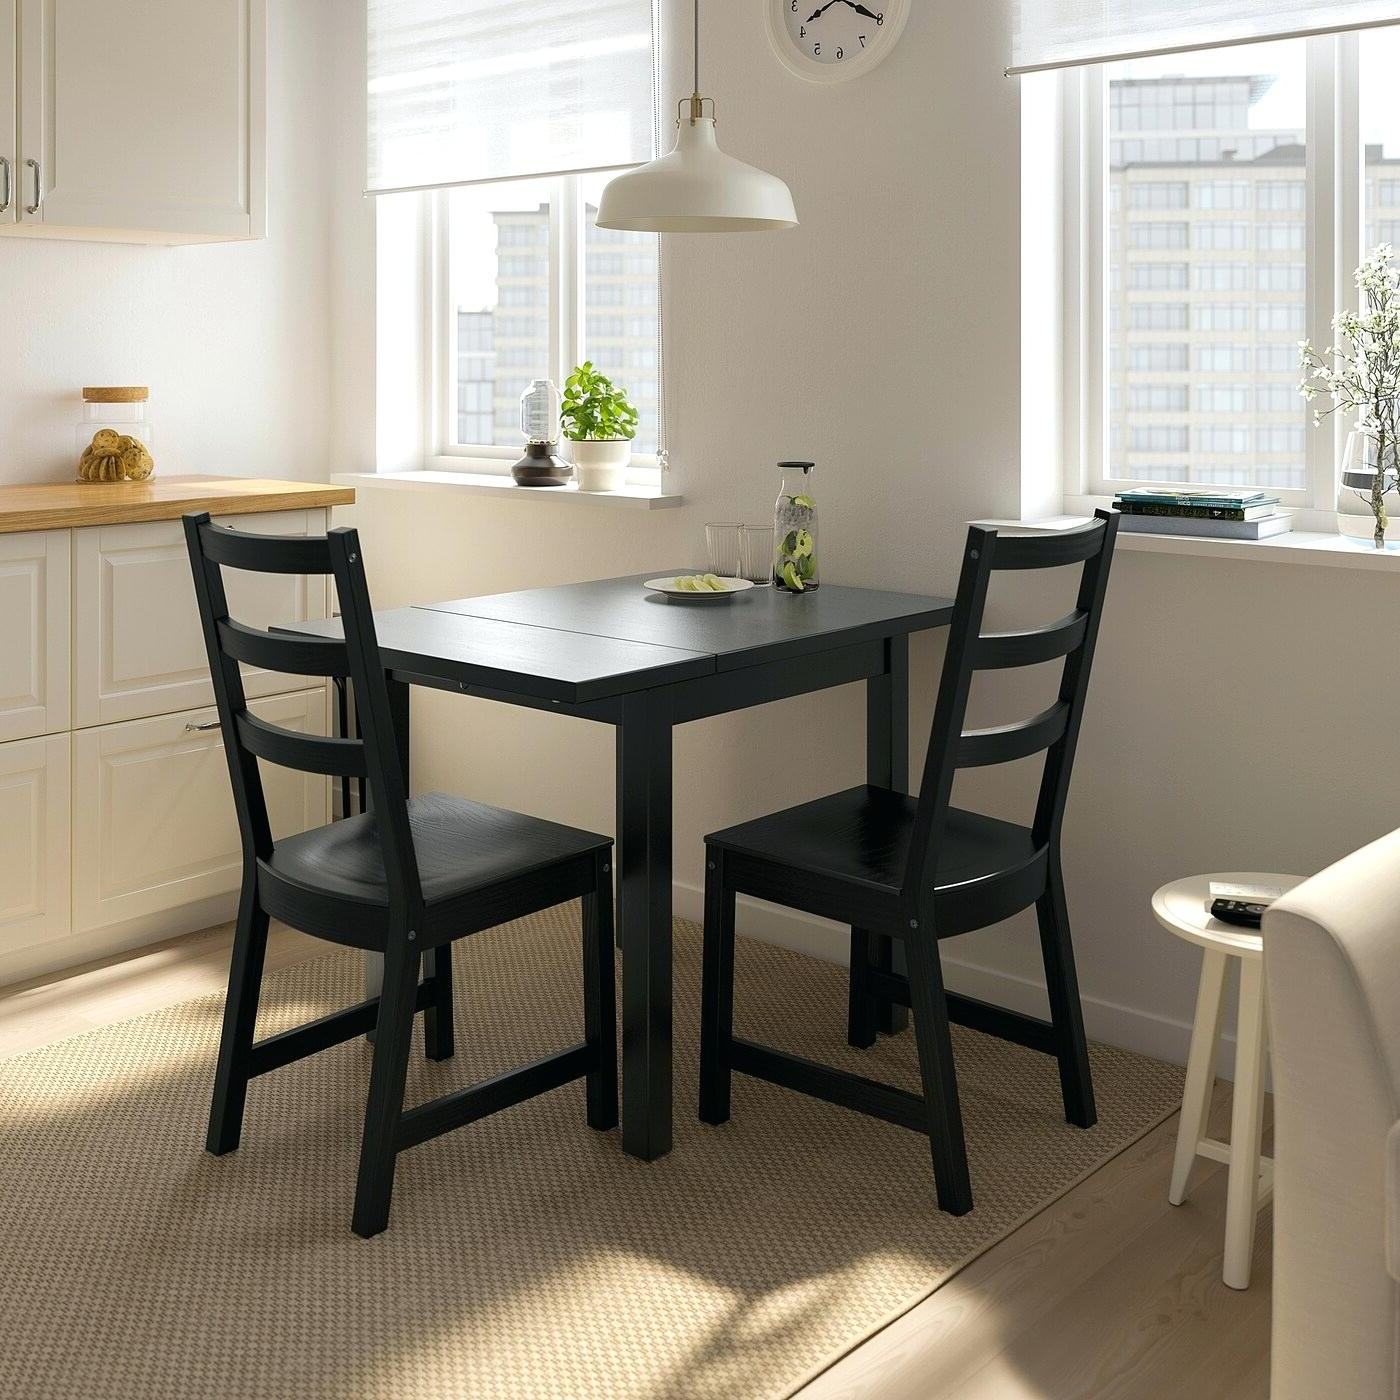 Fashionable Salvaged Black Shayne Drop Leaf Kitchen Tables Intended For Black Kitchen Table With Leaf – Funtom (View 4 of 25)